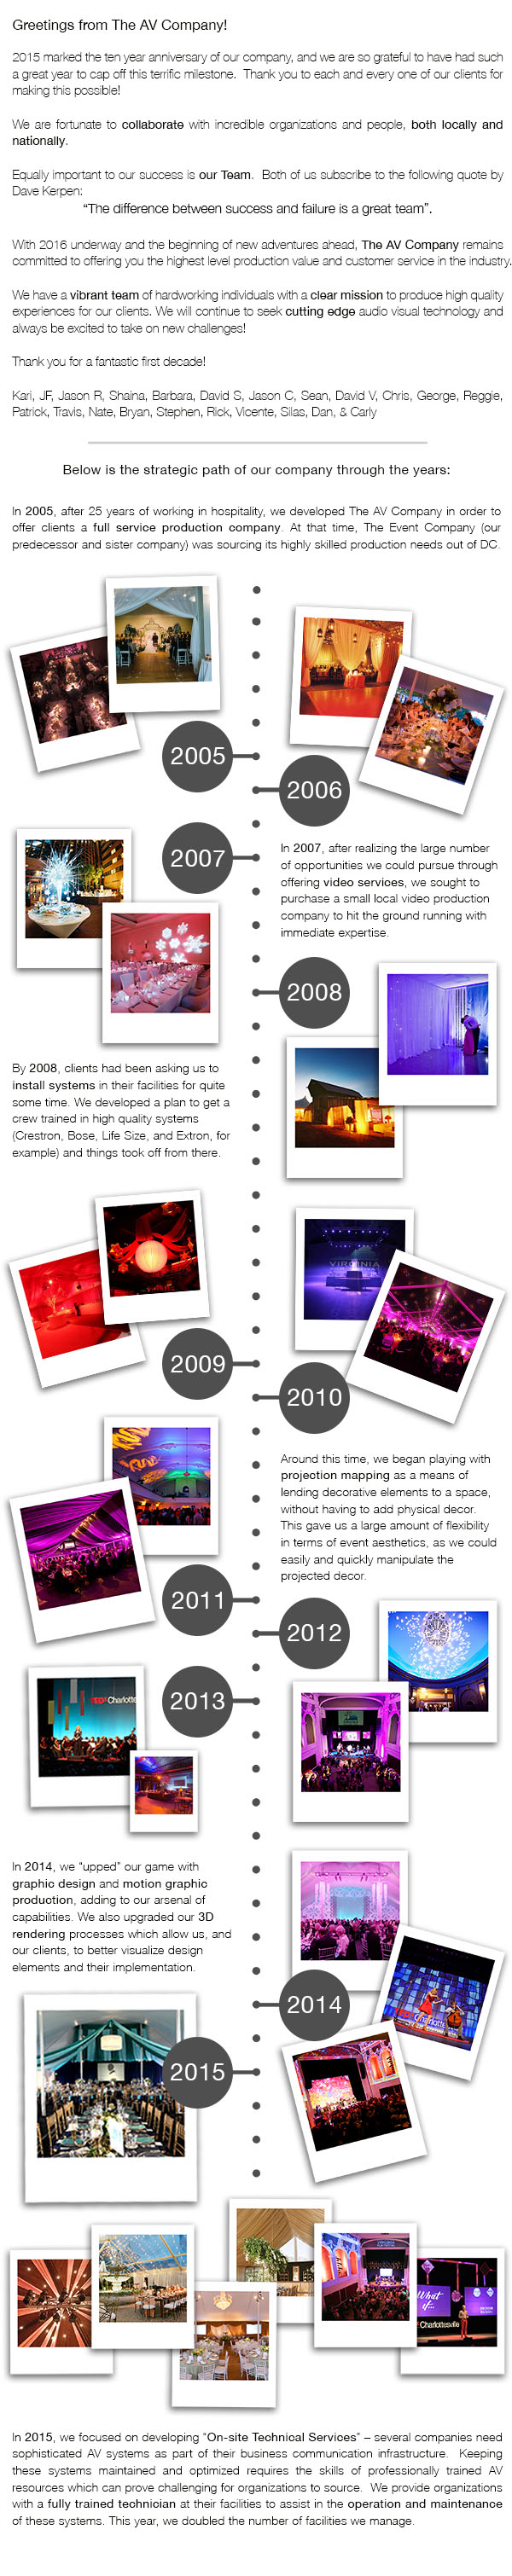 ten-year-anniversary-infographic.jpg